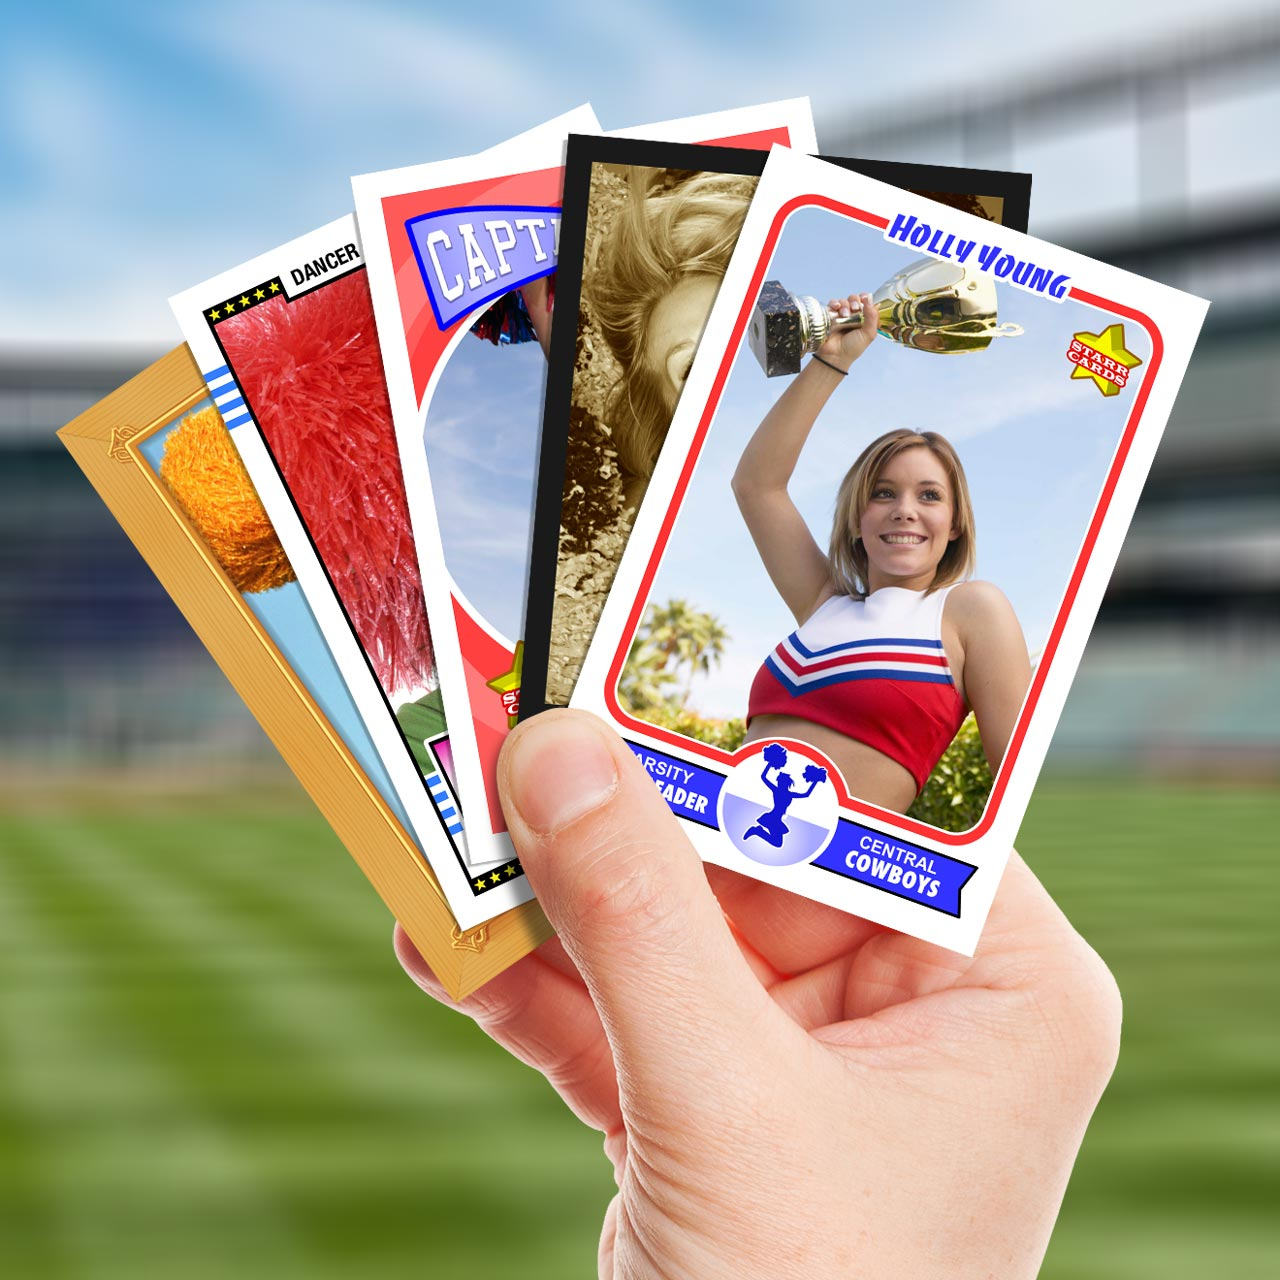 Make your own cheerleader card with Starr Cards.